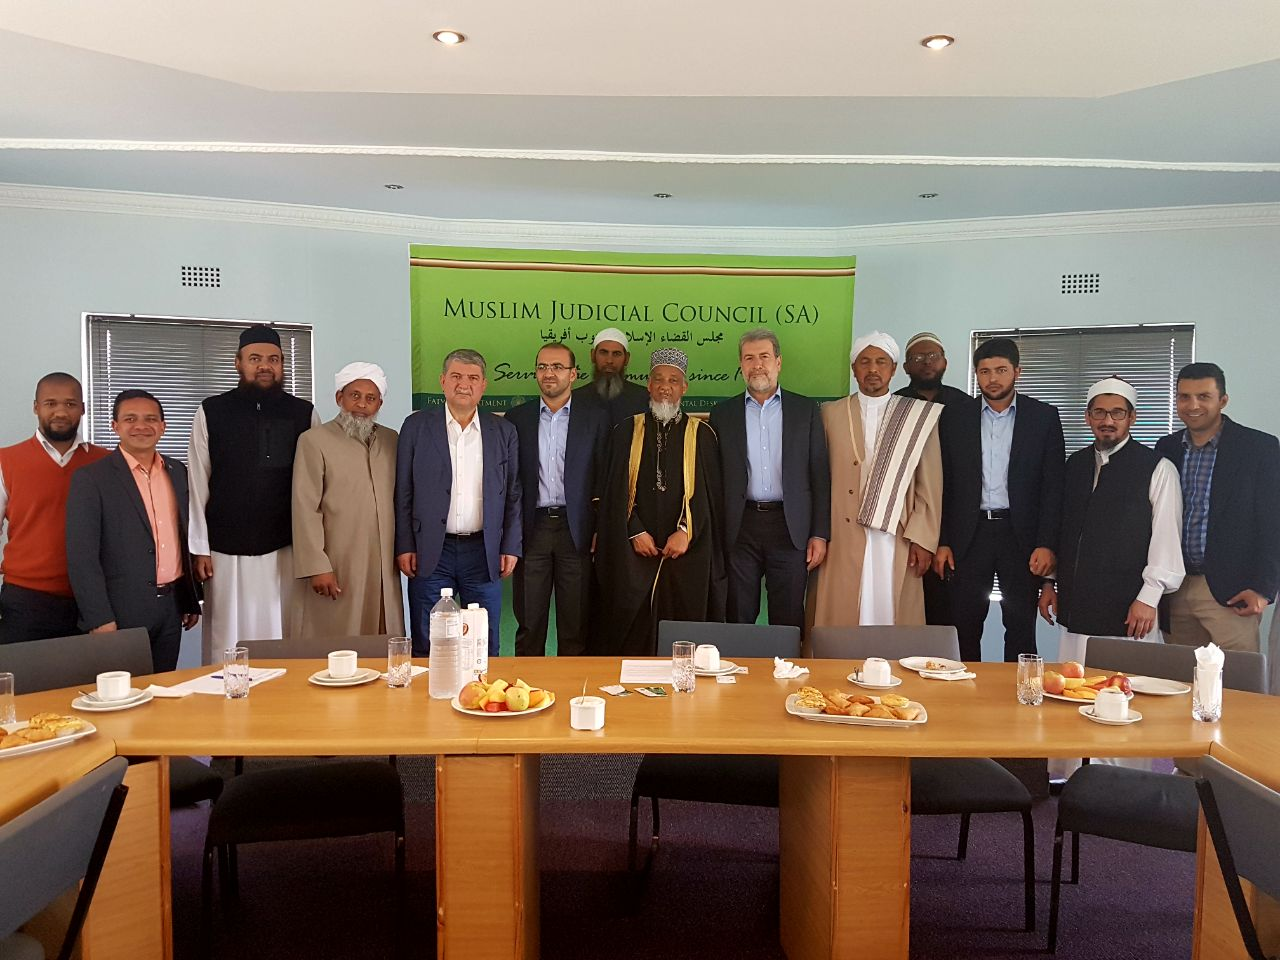 sa muslims blessed to have freedom of religion: turkish foreign affairs committee - turkish delegation - SA Muslims blessed to have freedom of religion: Turkish Foreign Affairs Committee